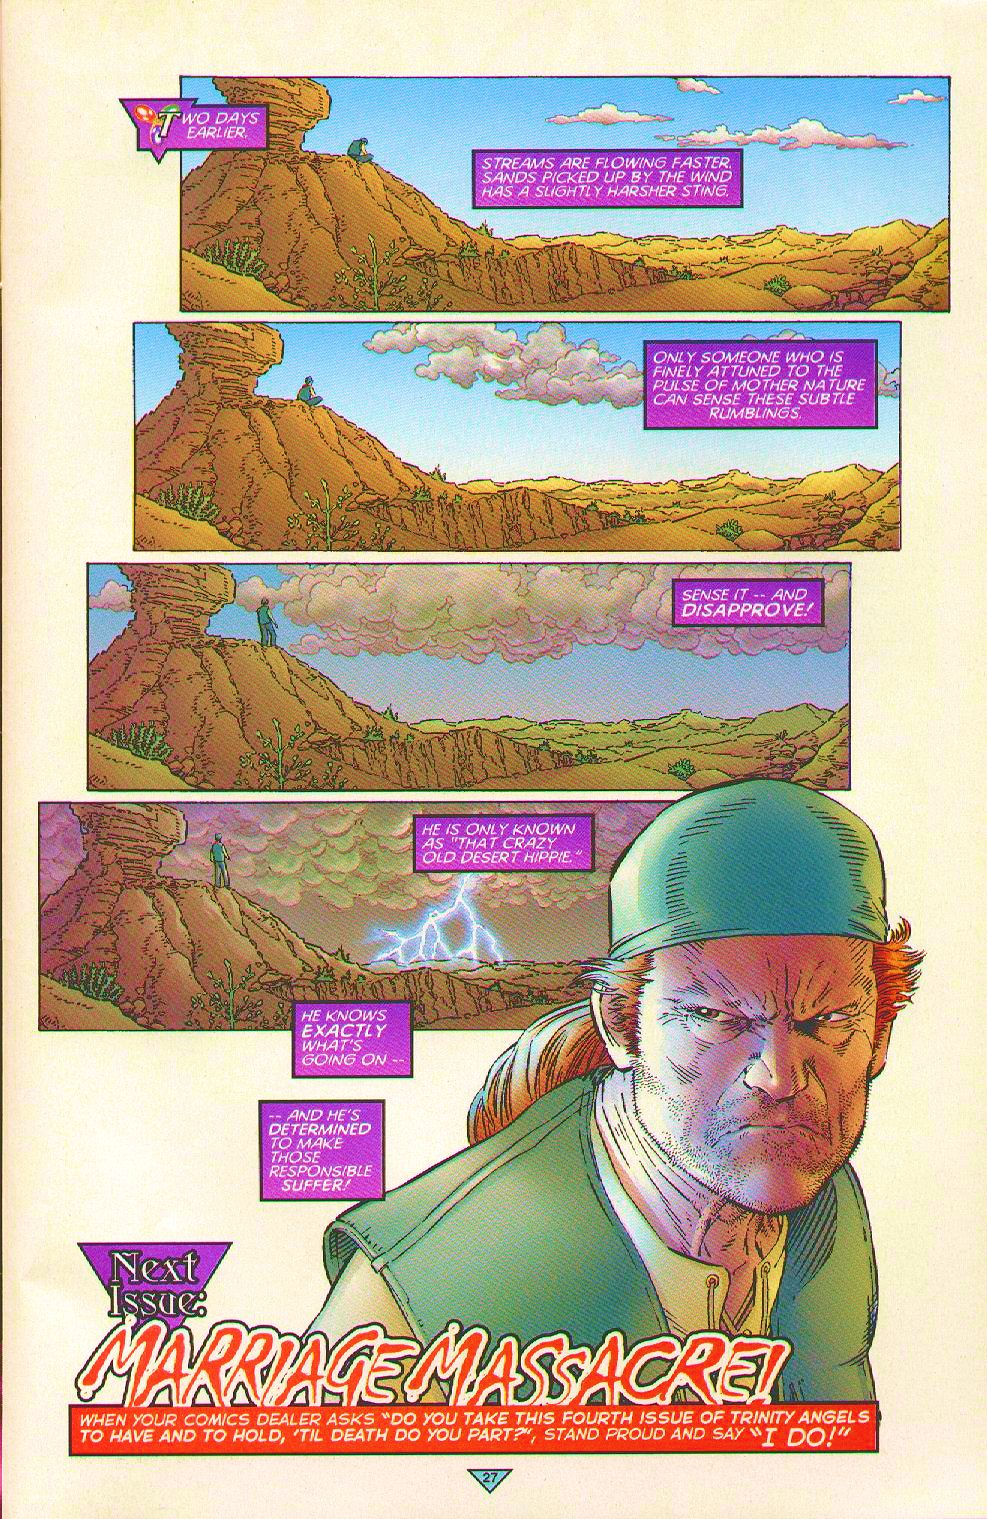 Read online Trinity Angels comic -  Issue #3 - 22